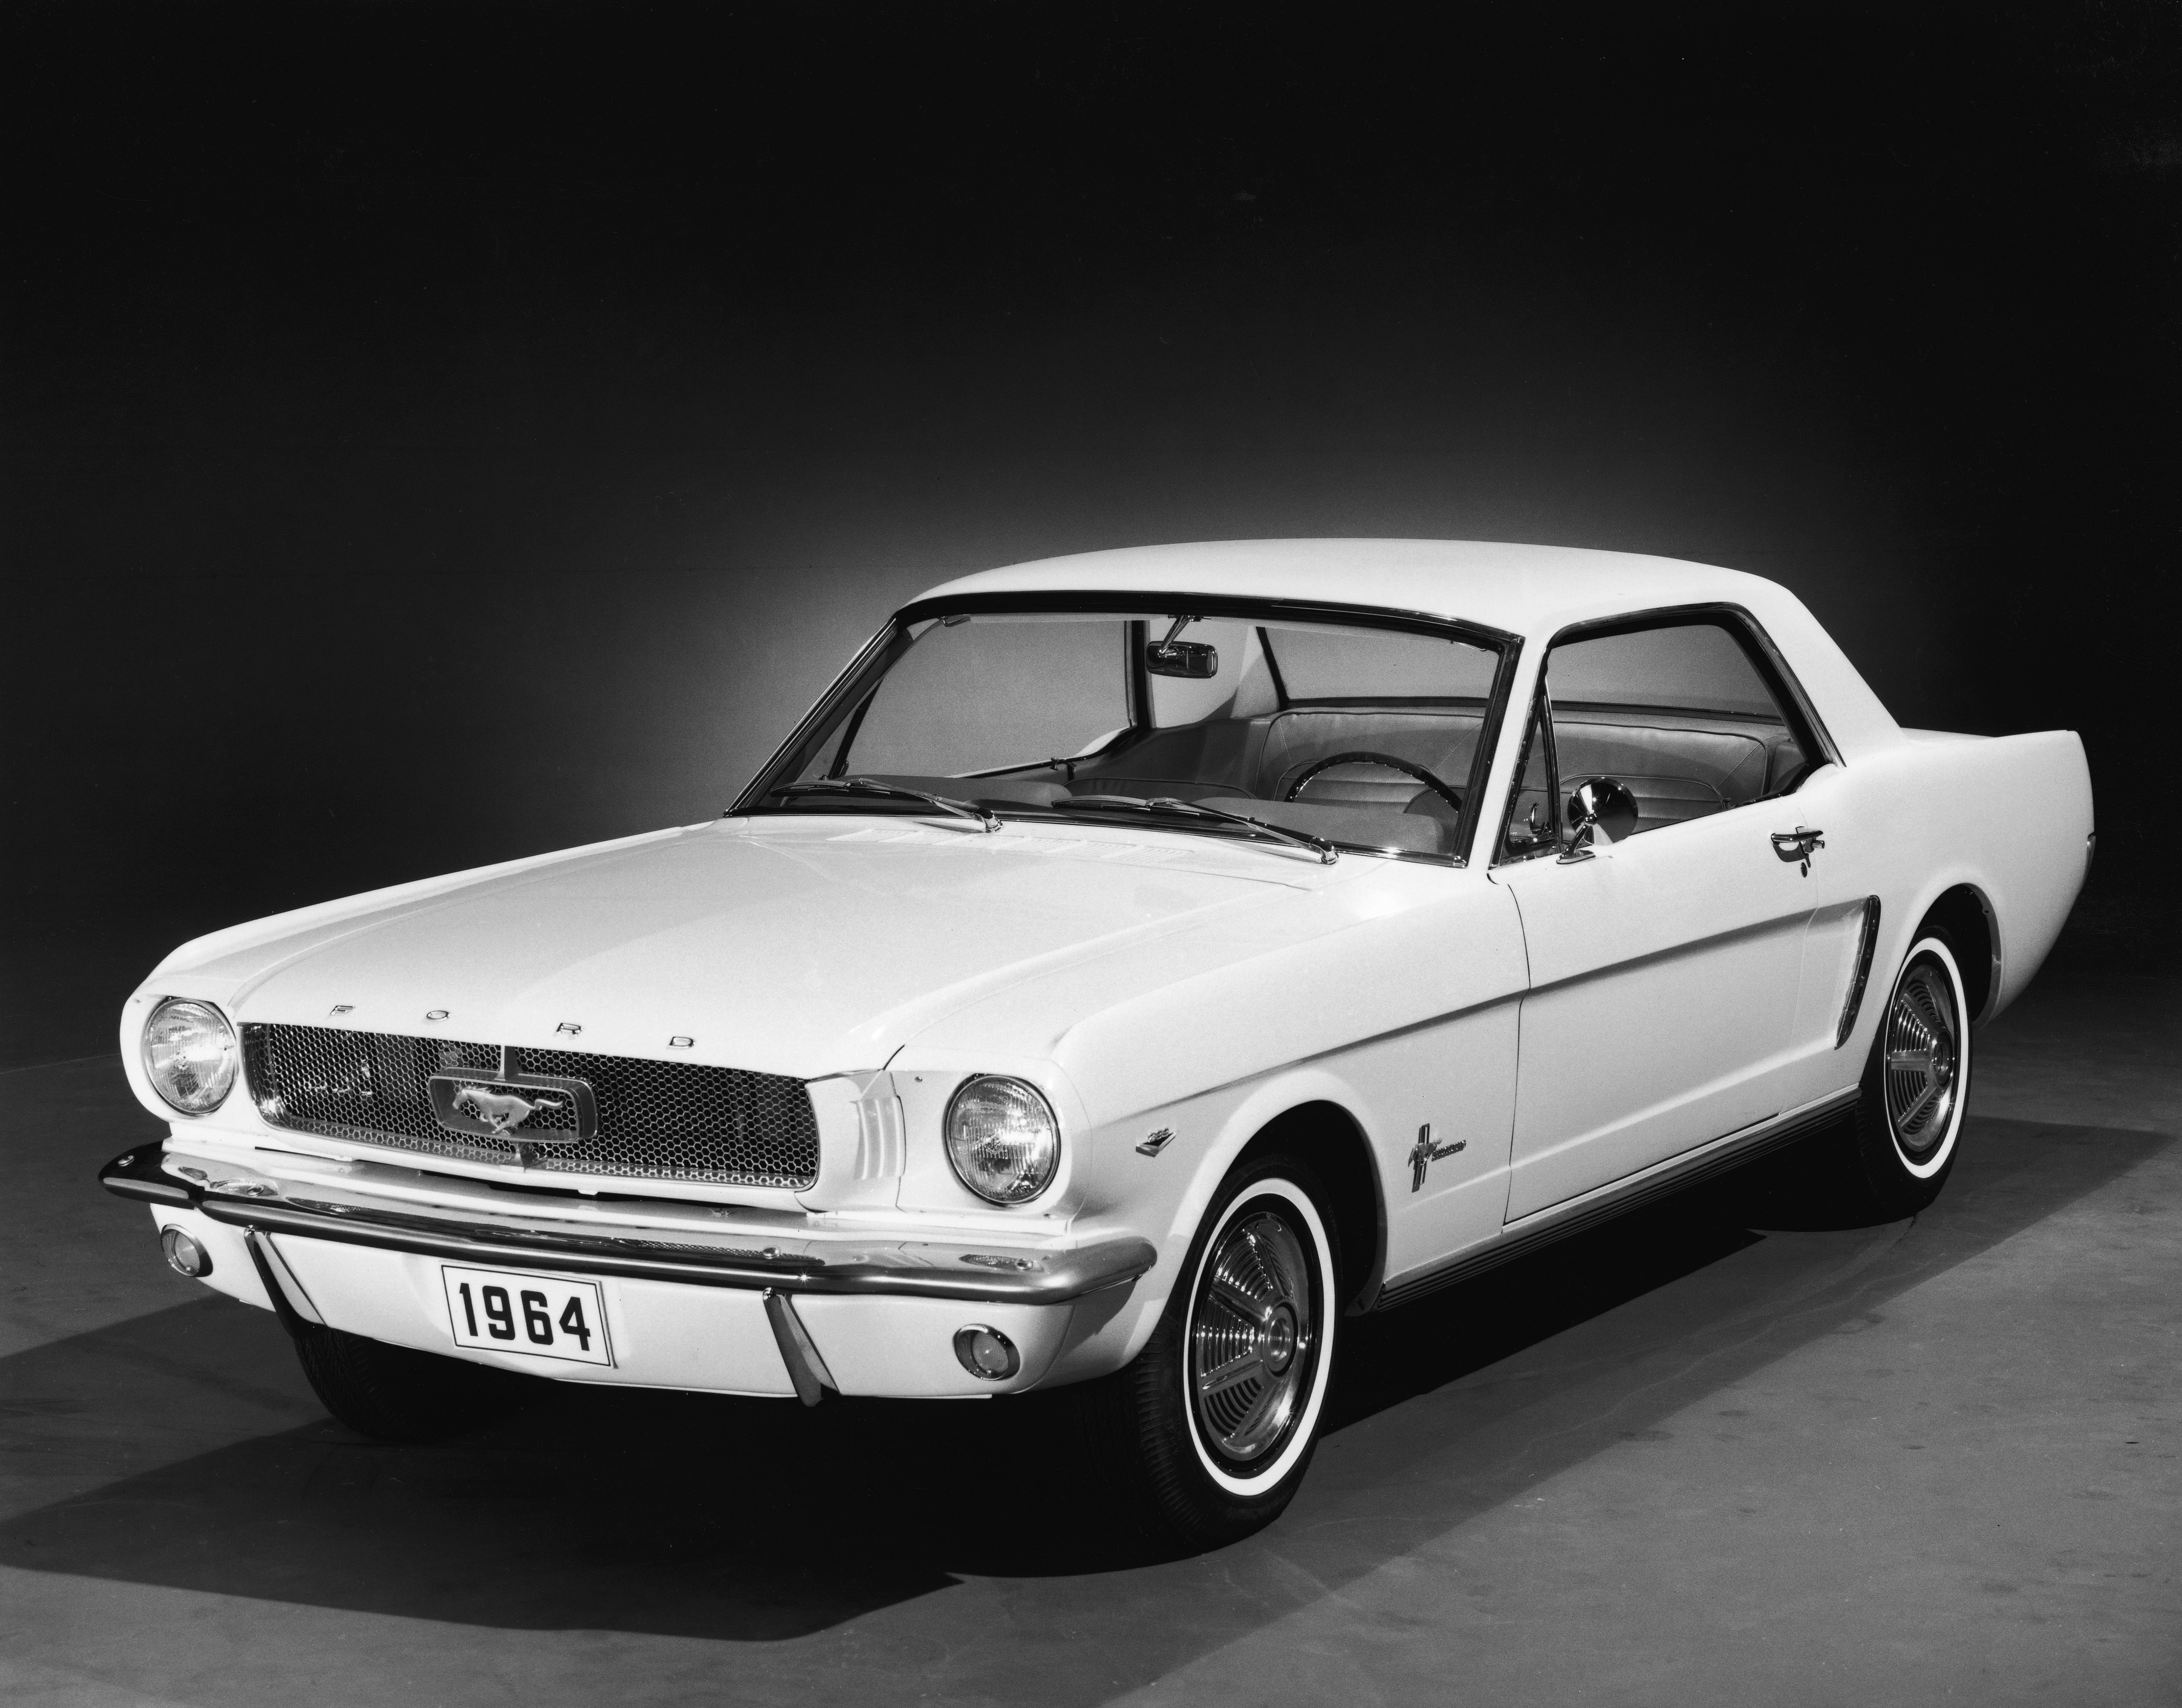 High Resolution Wallpaper | 1964 Ford Mustang 4020x3147 px